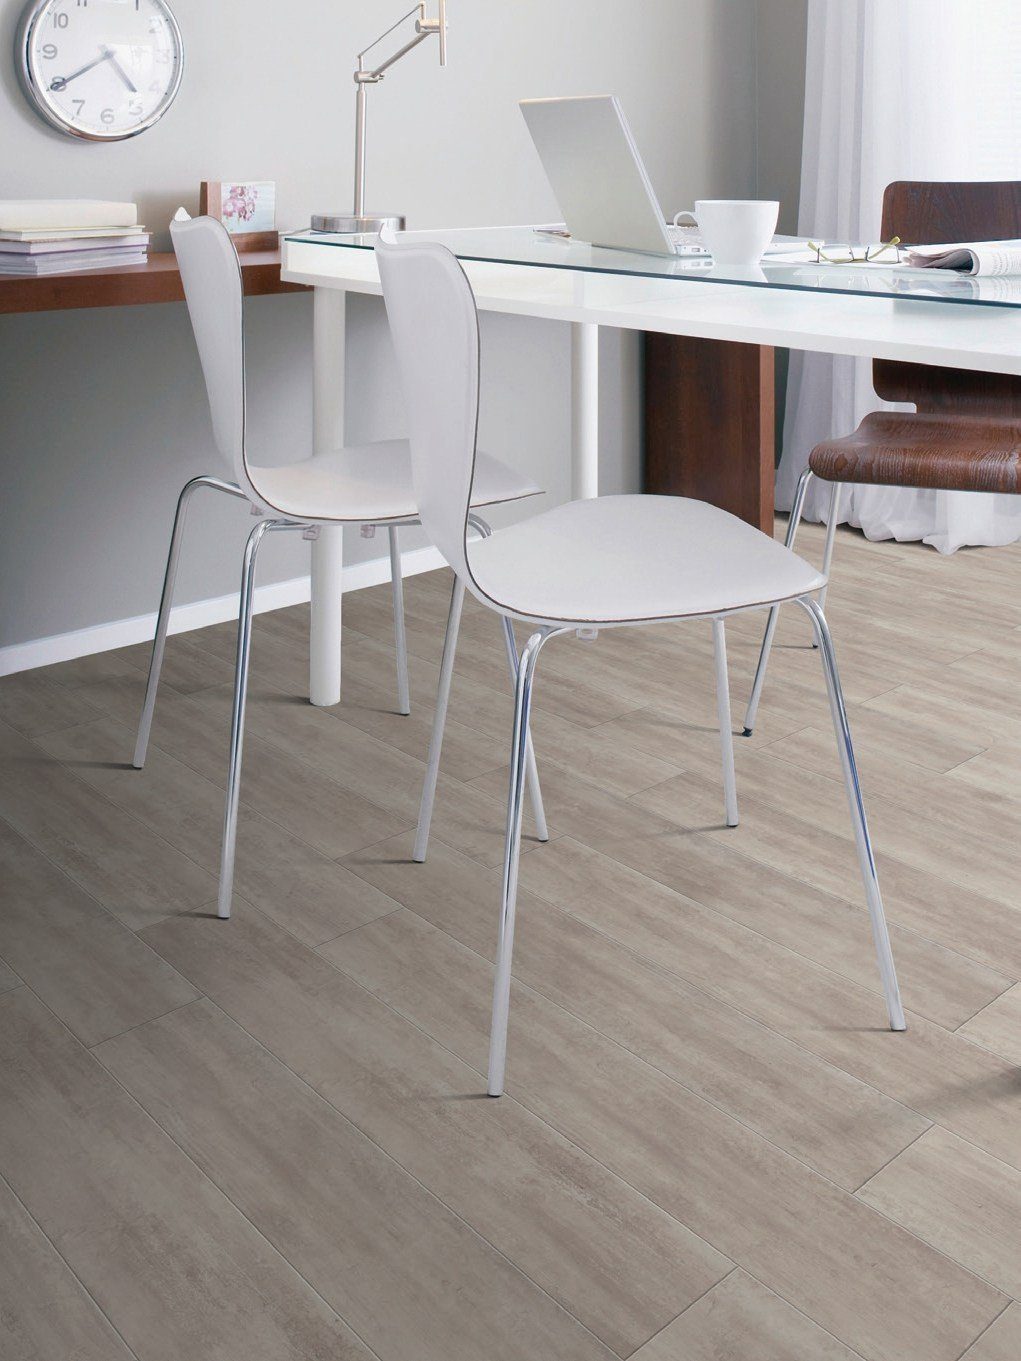 Rev tement de sol en vinyle effet bois insight wood by gerflor - Revetement sol en bois ...